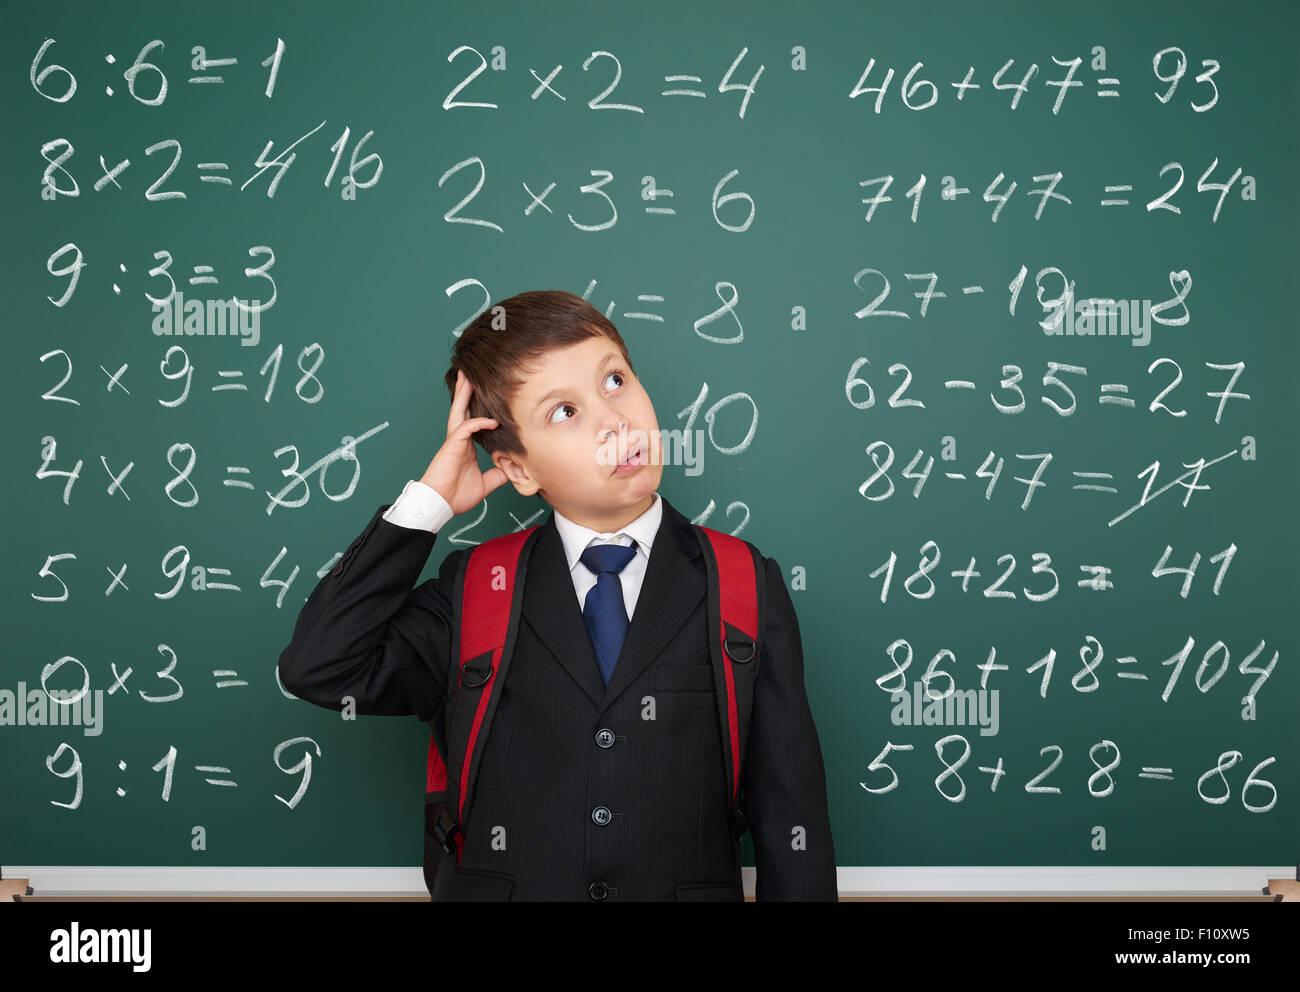 Math Exercise Stock Photos & Math Exercise Stock Images - Alamy